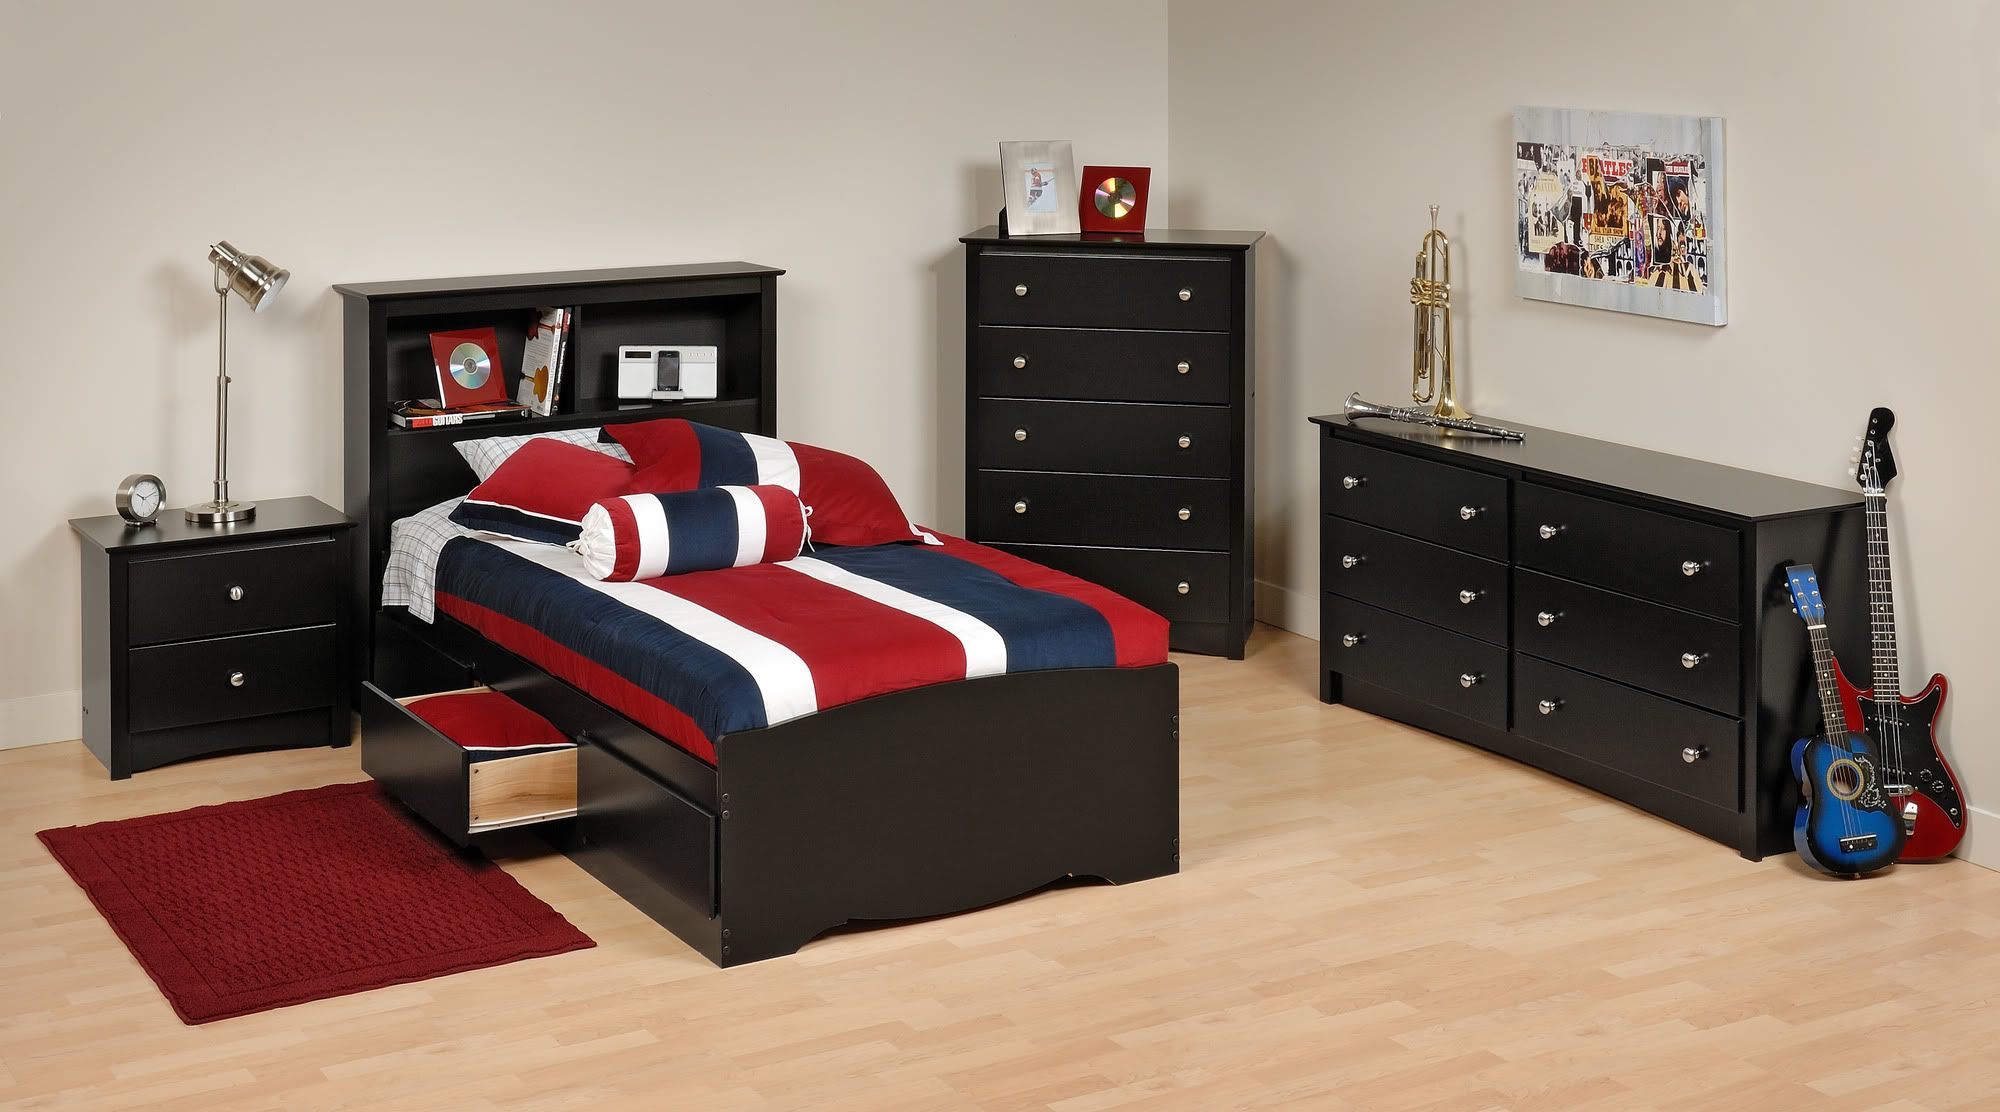 Alluring Boys Bedroom Set With Twin Size Bookcase Bed And Simple